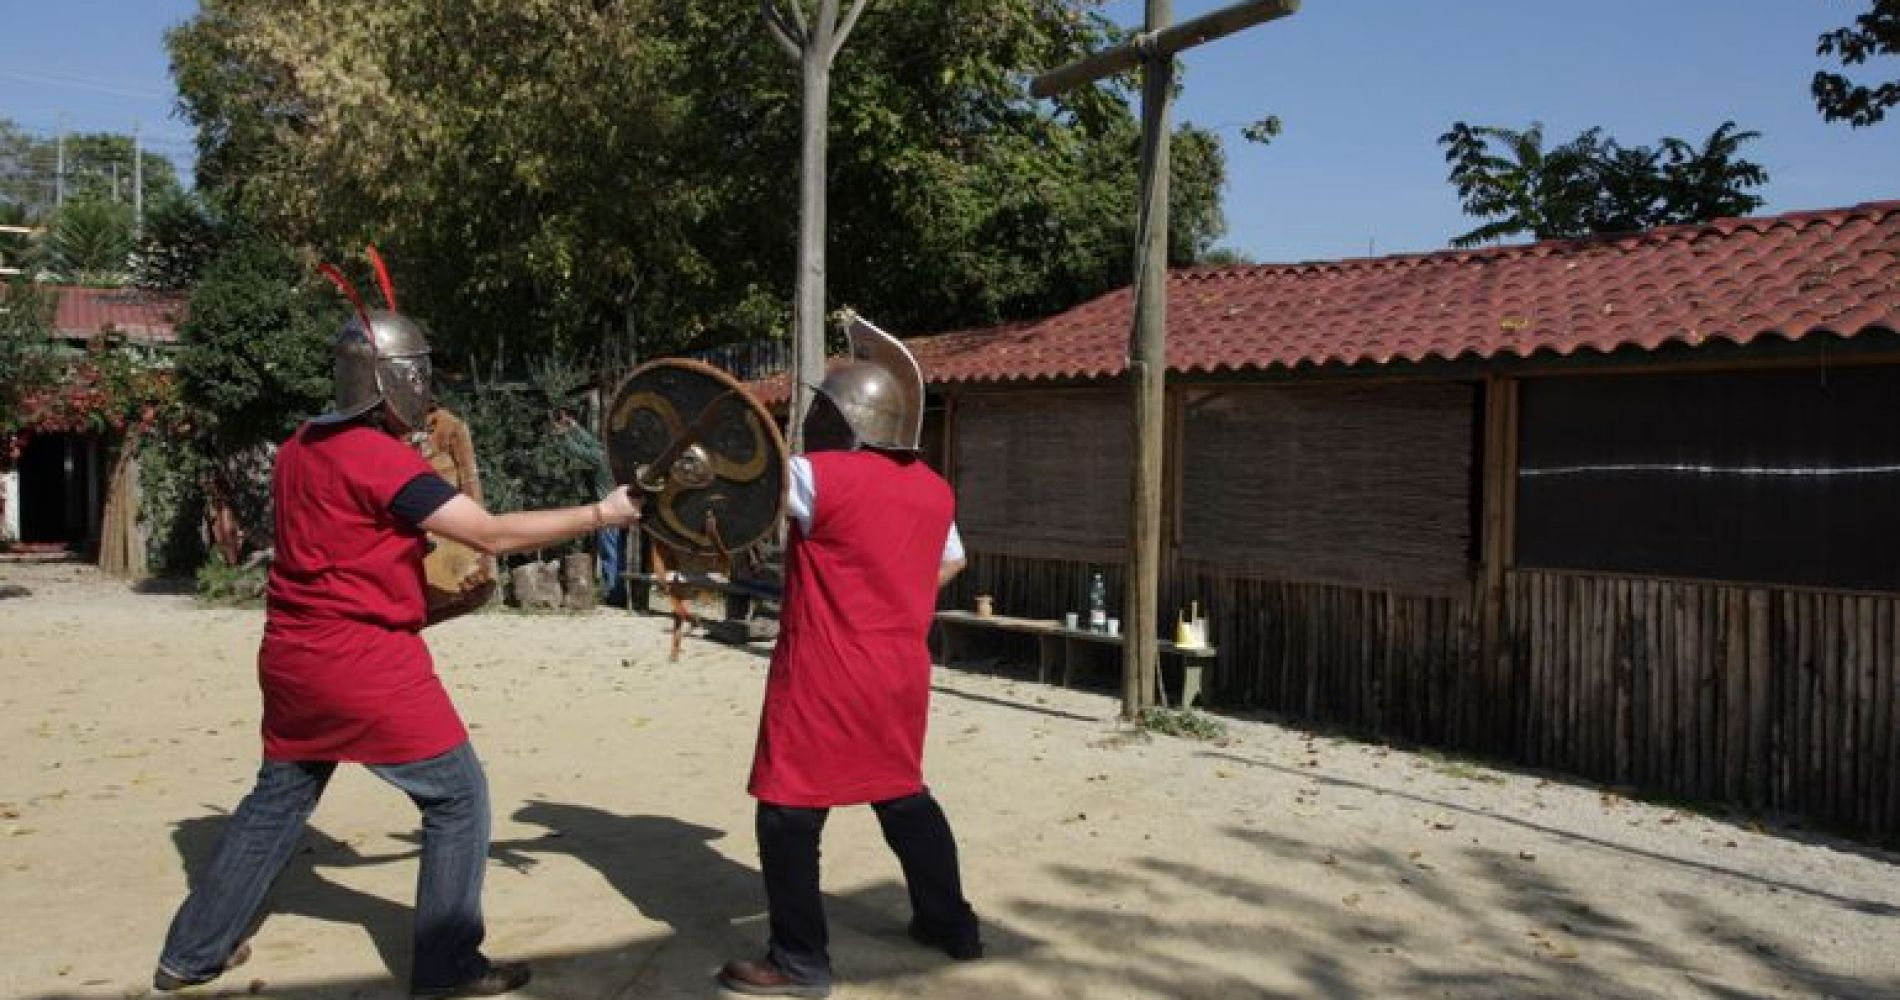 gladiator fight rome italy gift